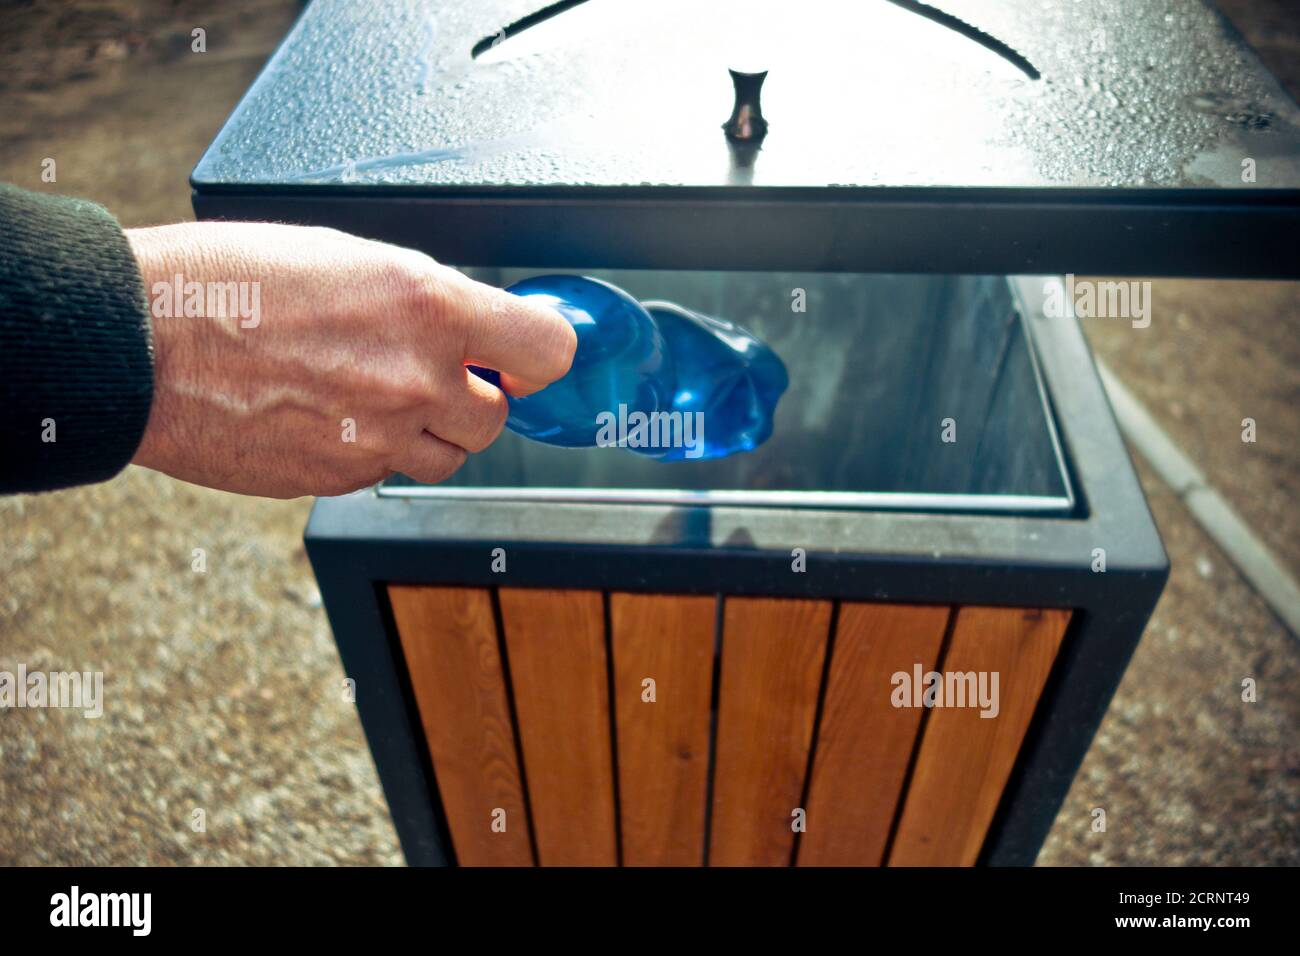 hand putting a plastic bottle into a public waste container Stock Photo